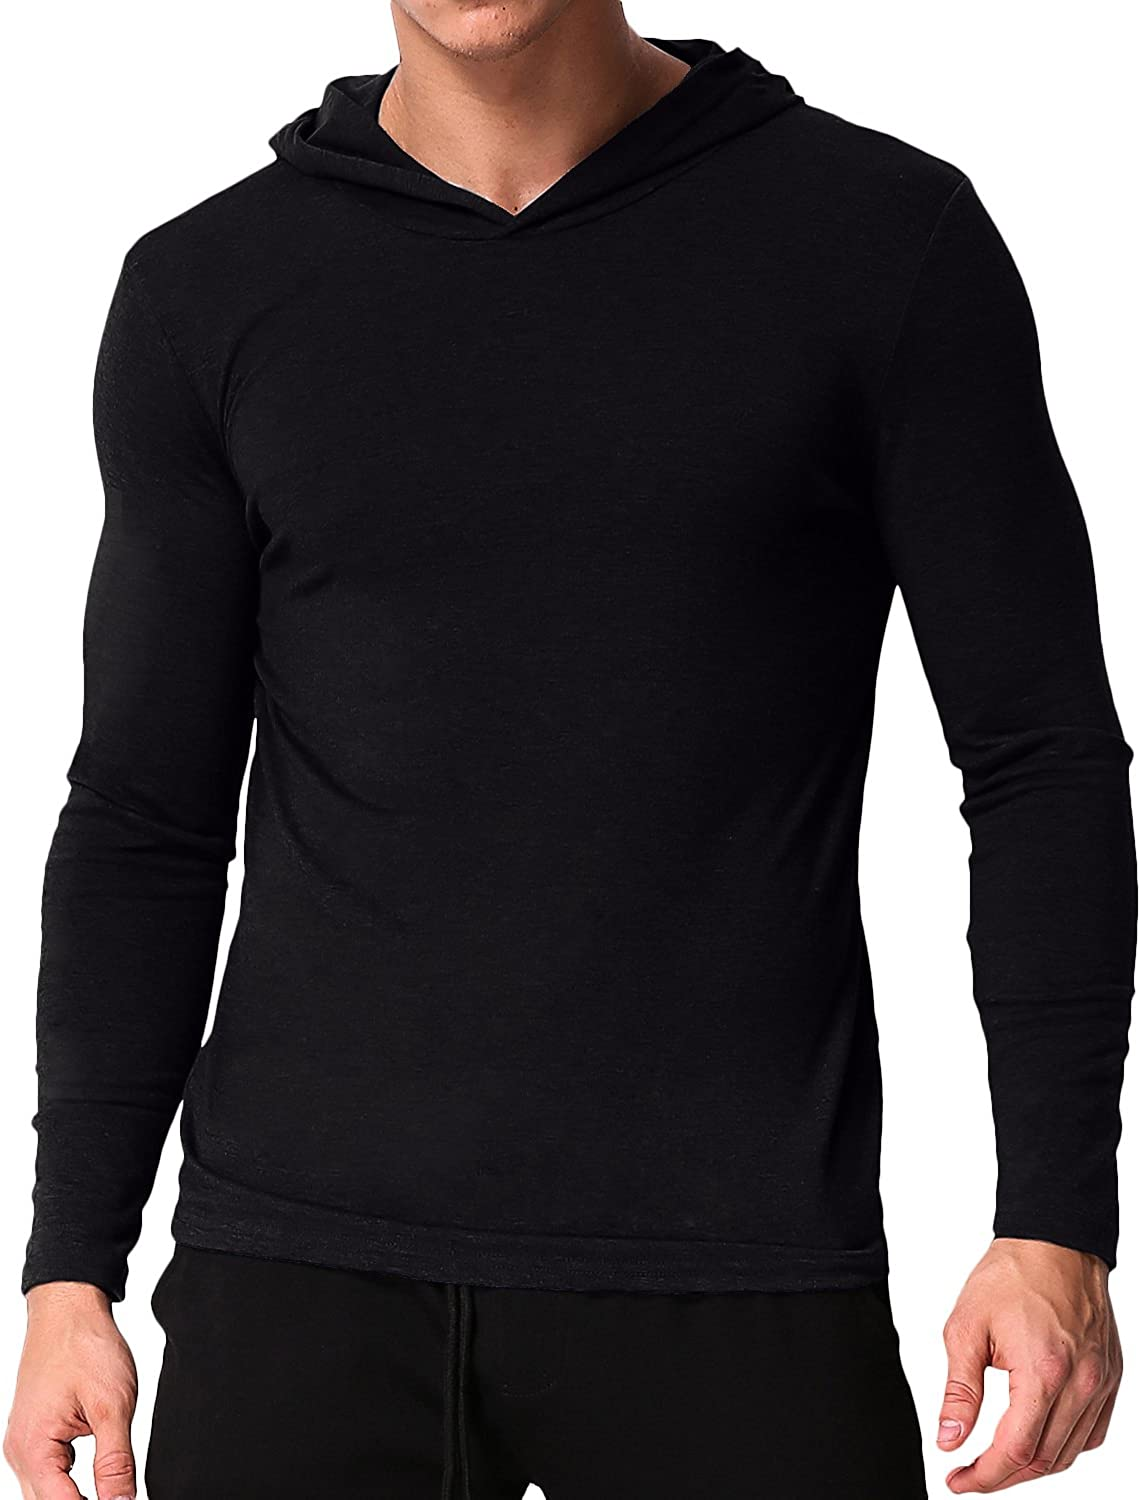 PODOM Men's Polyester Long Sleeve Hoodie V Neck Shirts Tee Casual Tops Hooded